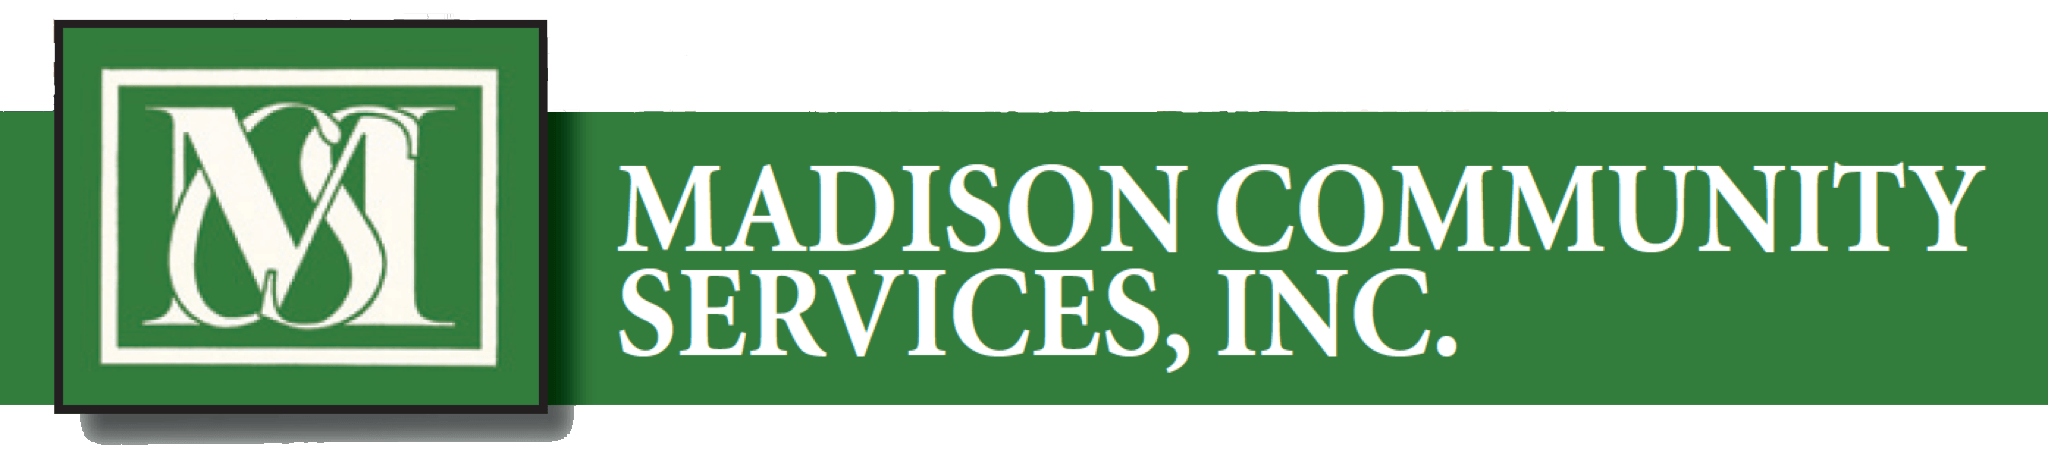 Madison Community Services, Inc